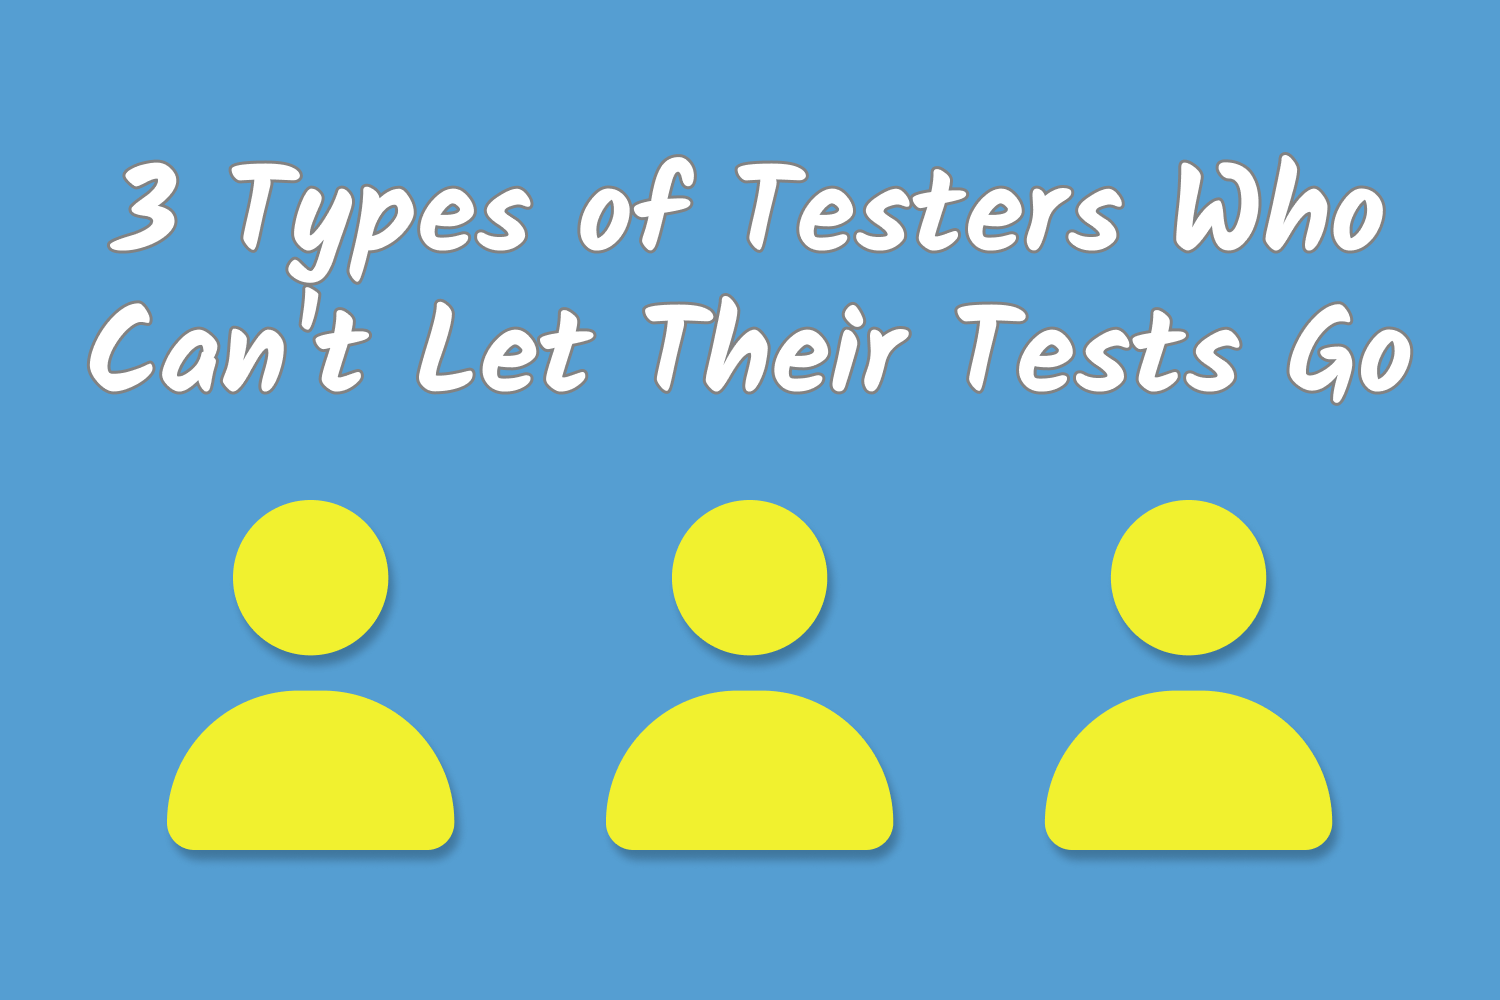 3 Types of Testers Who Can't Let Their Tests Go